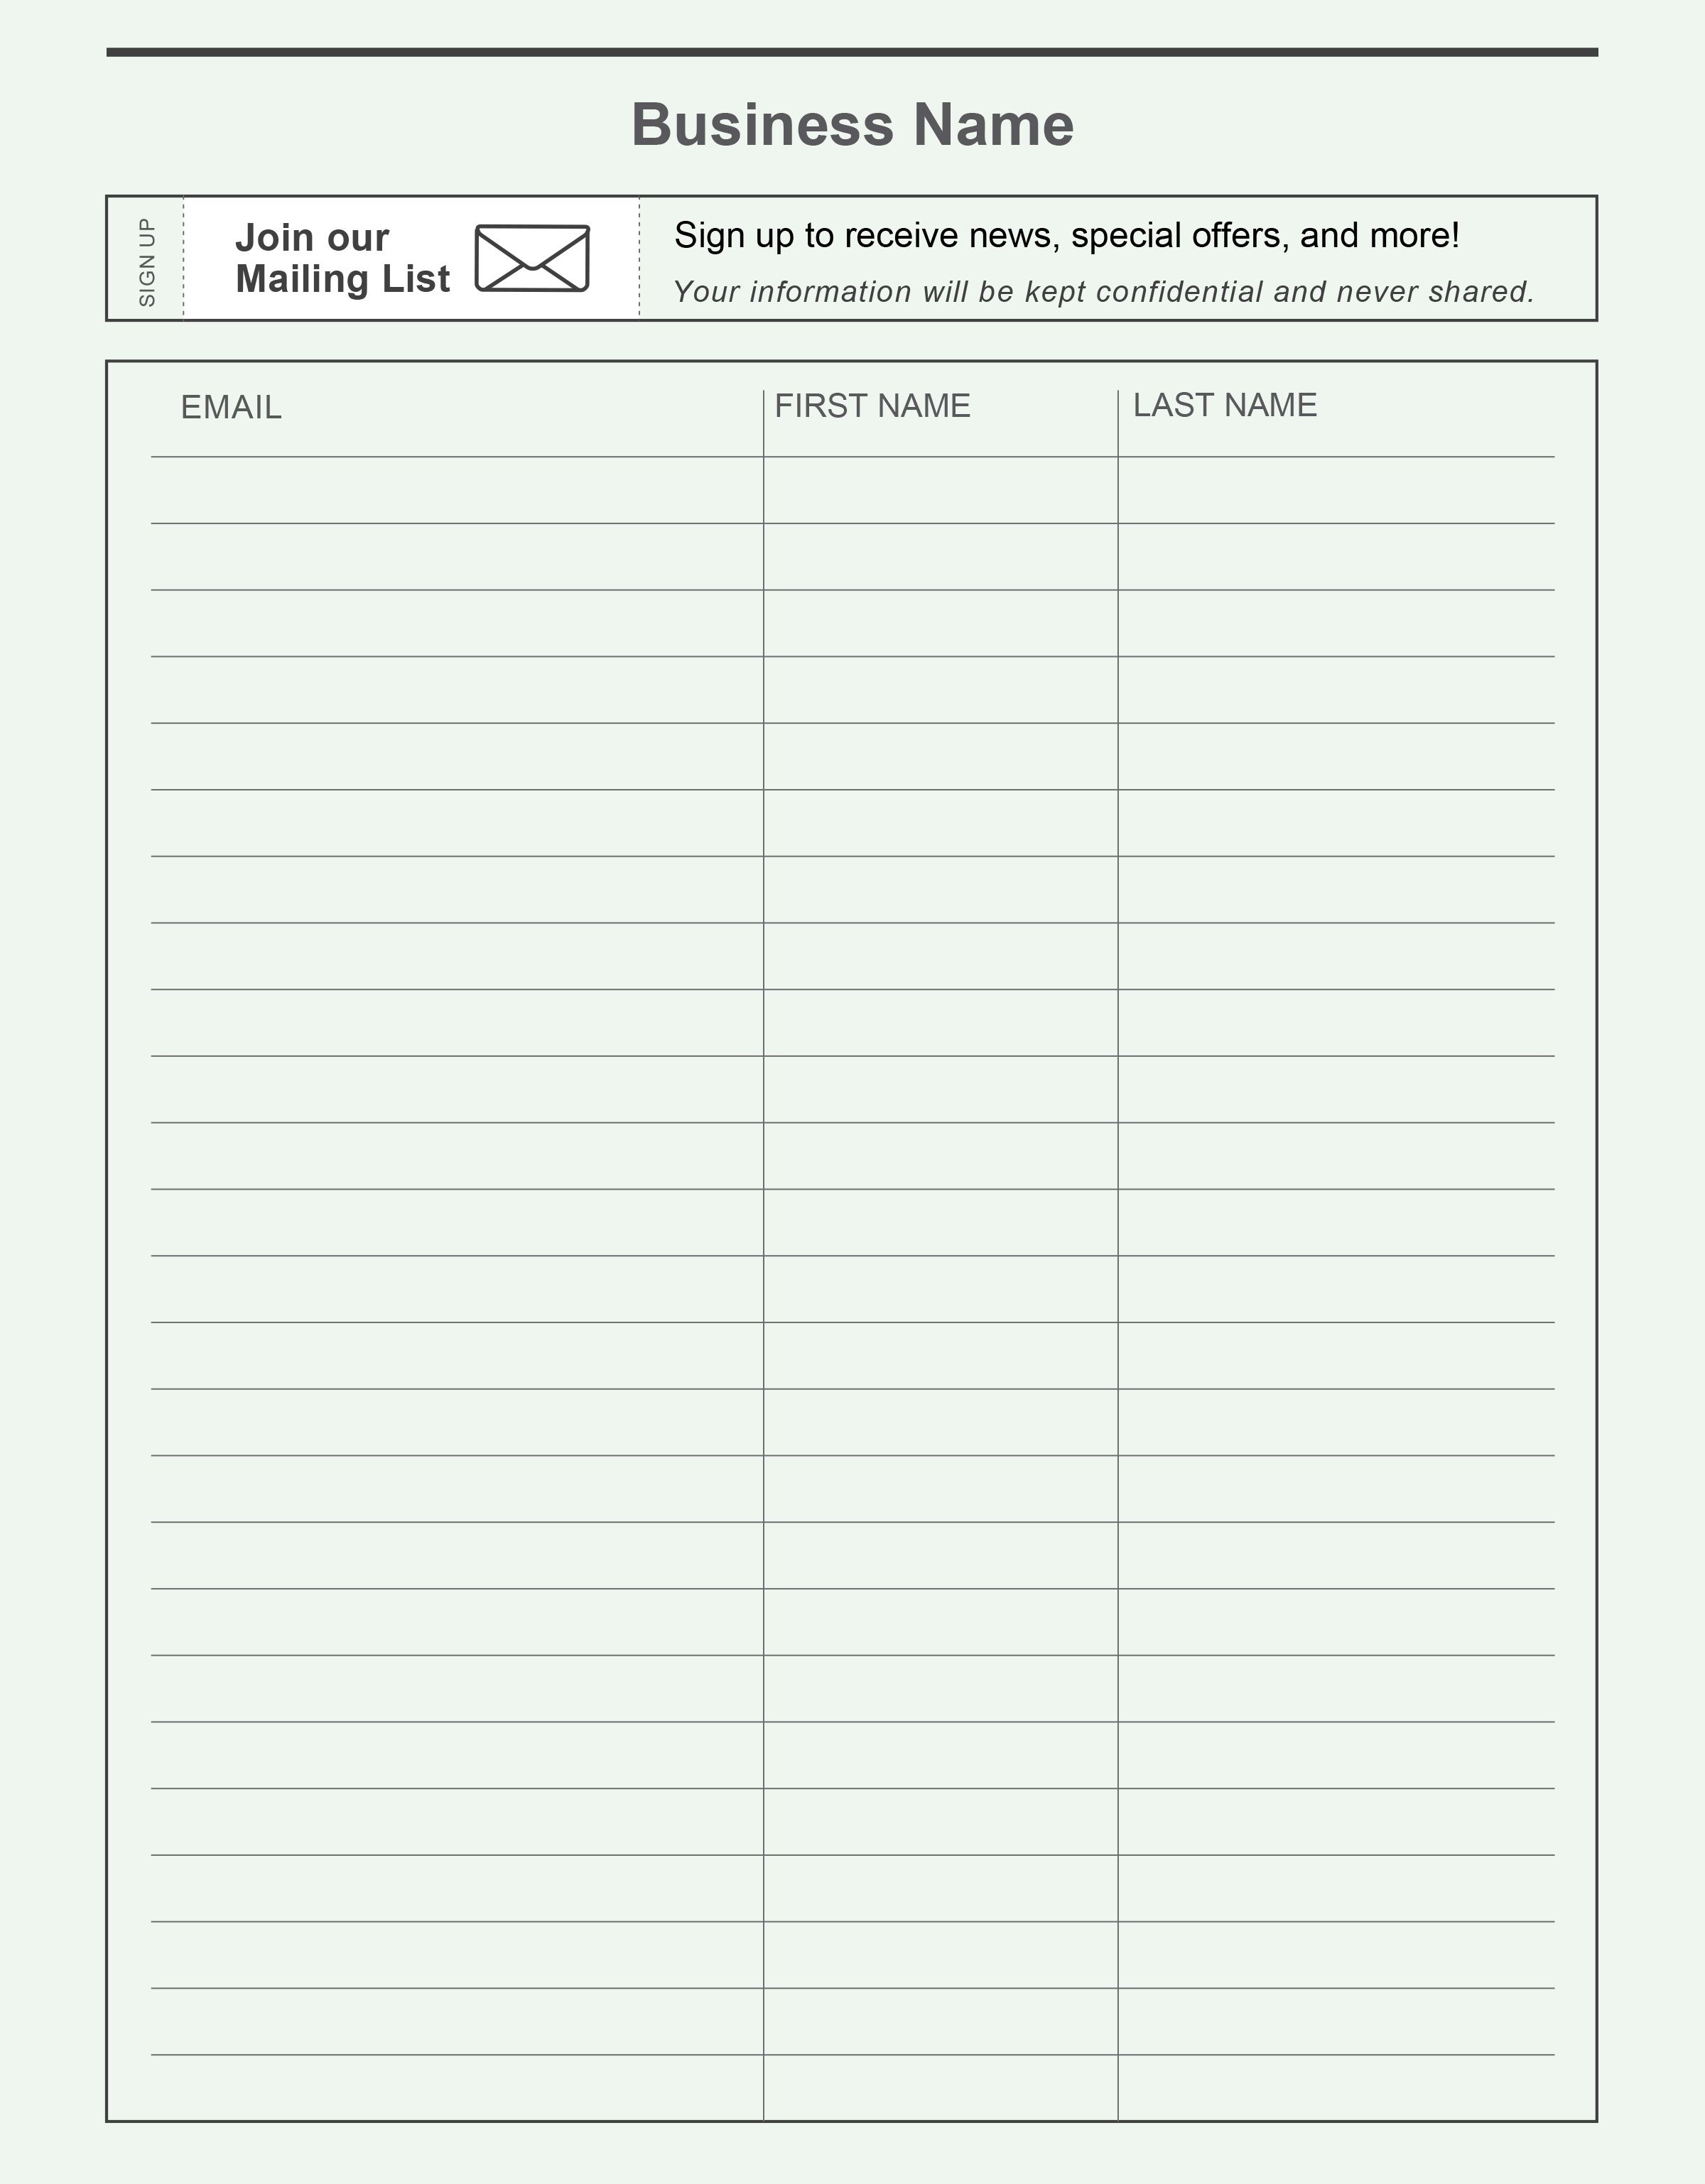 Pinconstant Contact On Grow Your Email List | List Template - Free Printable Numbered List